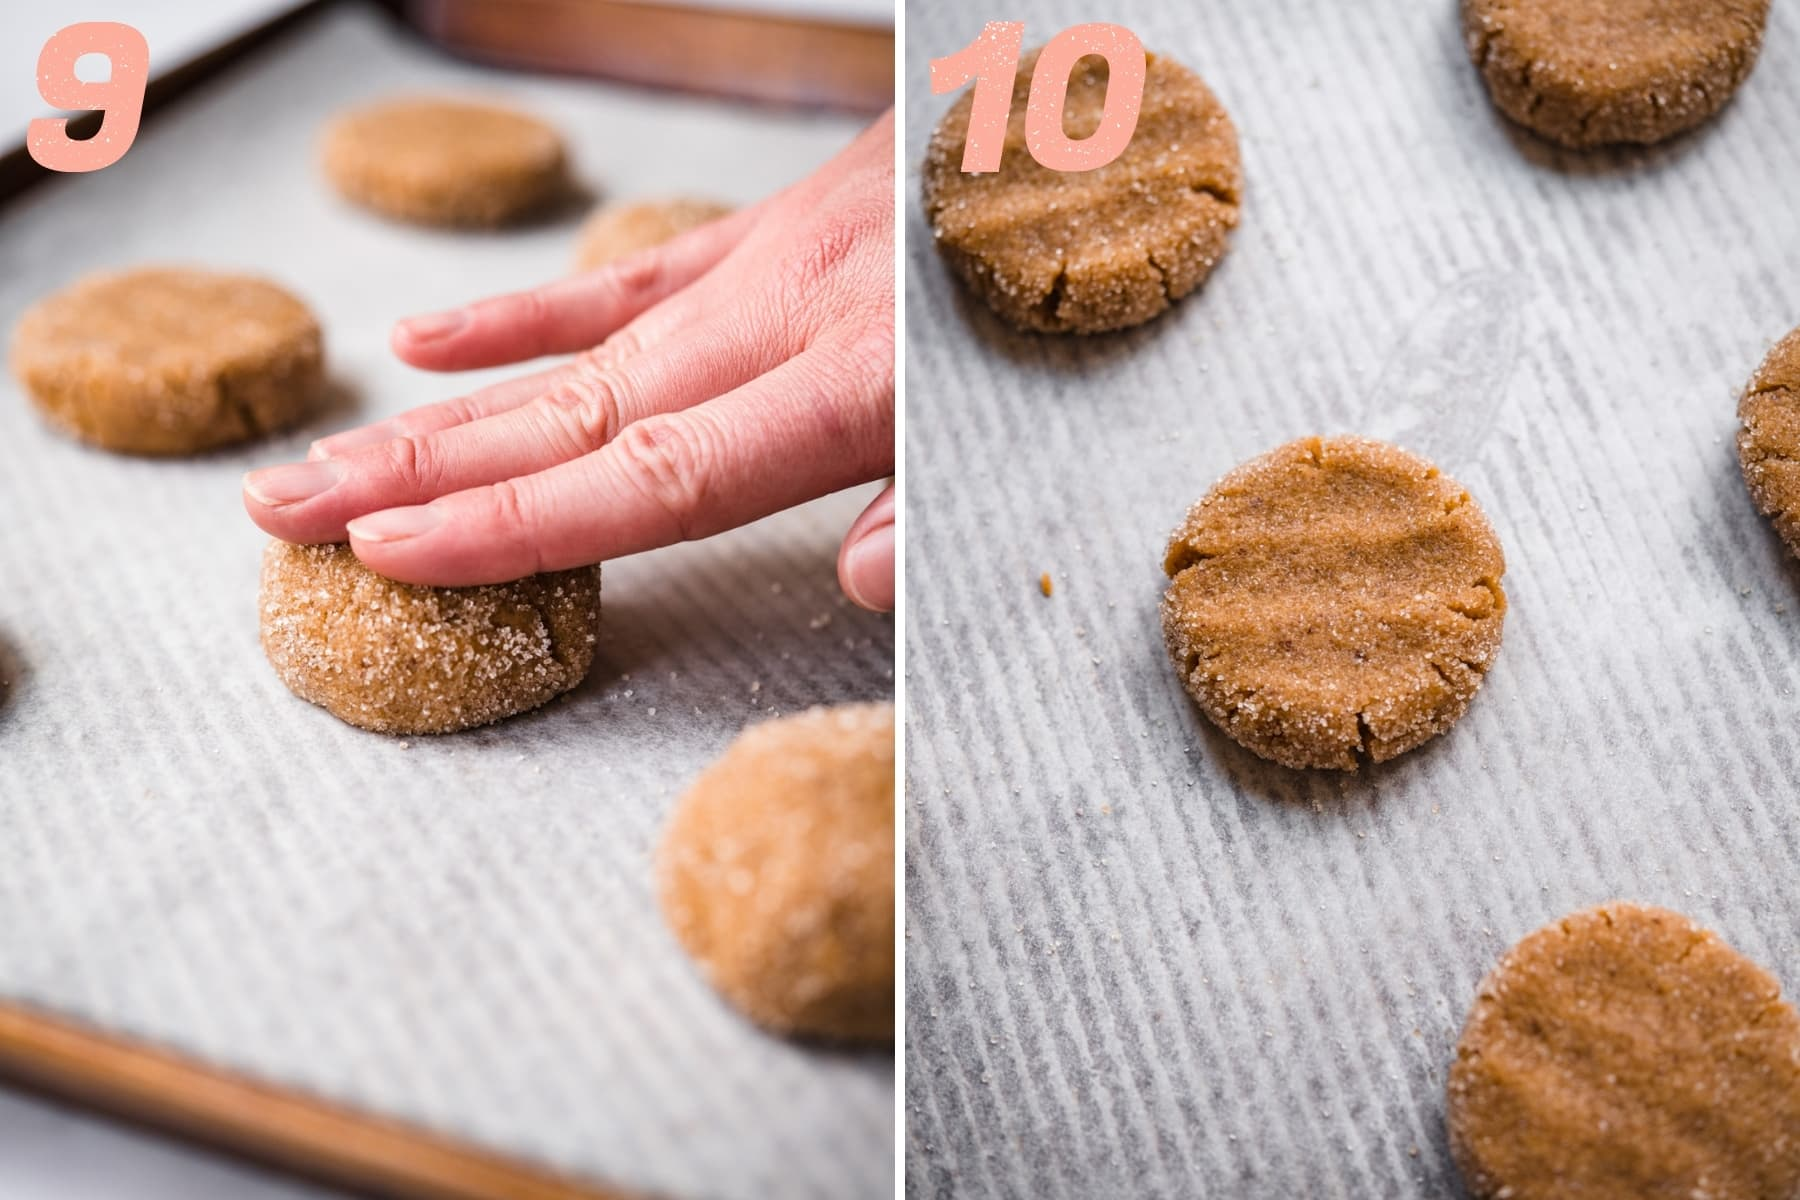 on the left: hand pressing down cookie dough ball. On the right: cookie dough before baking.